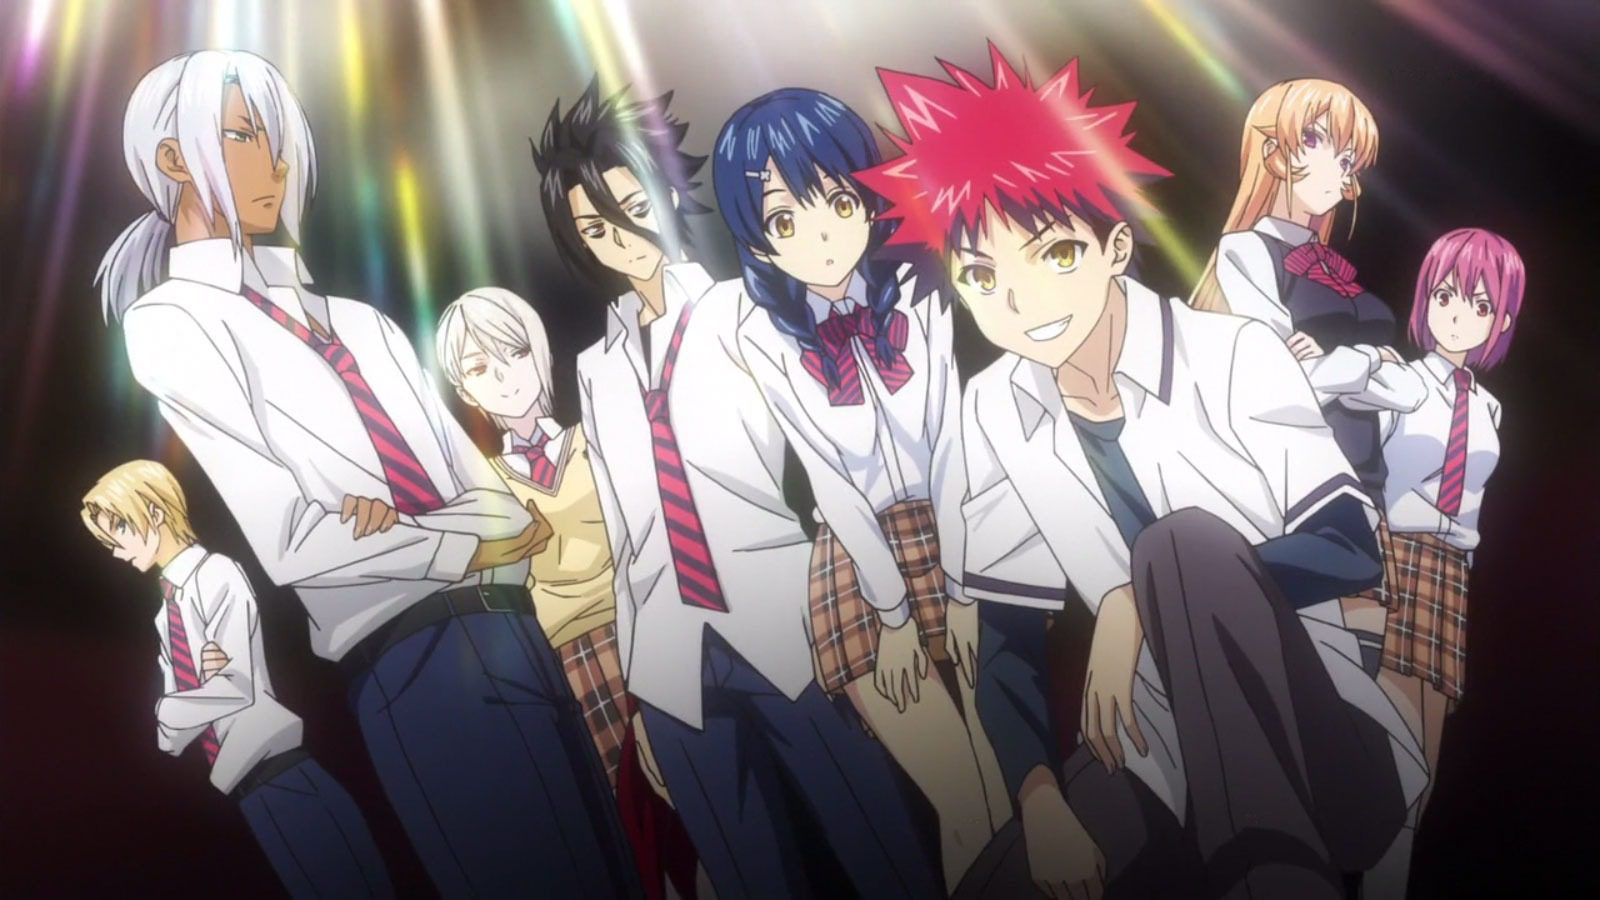 Shokugeki no Soma anime new elite ten council group scene